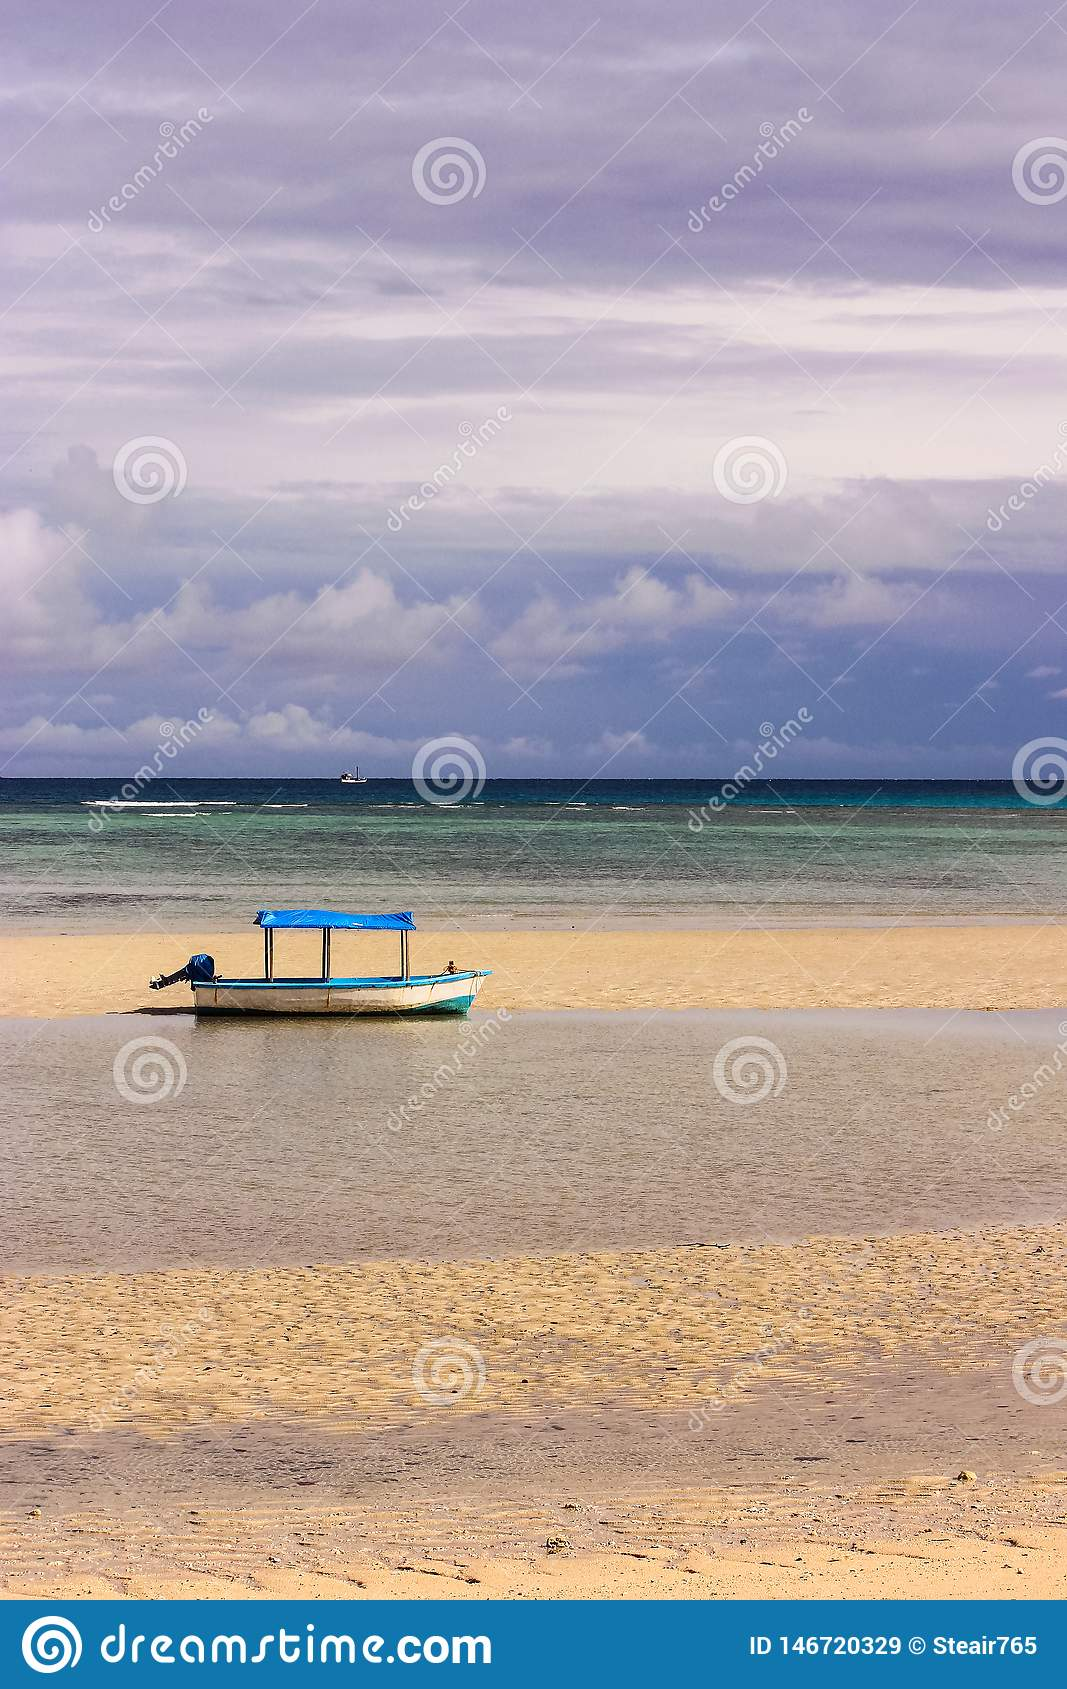 Boat with canopy  on the beach